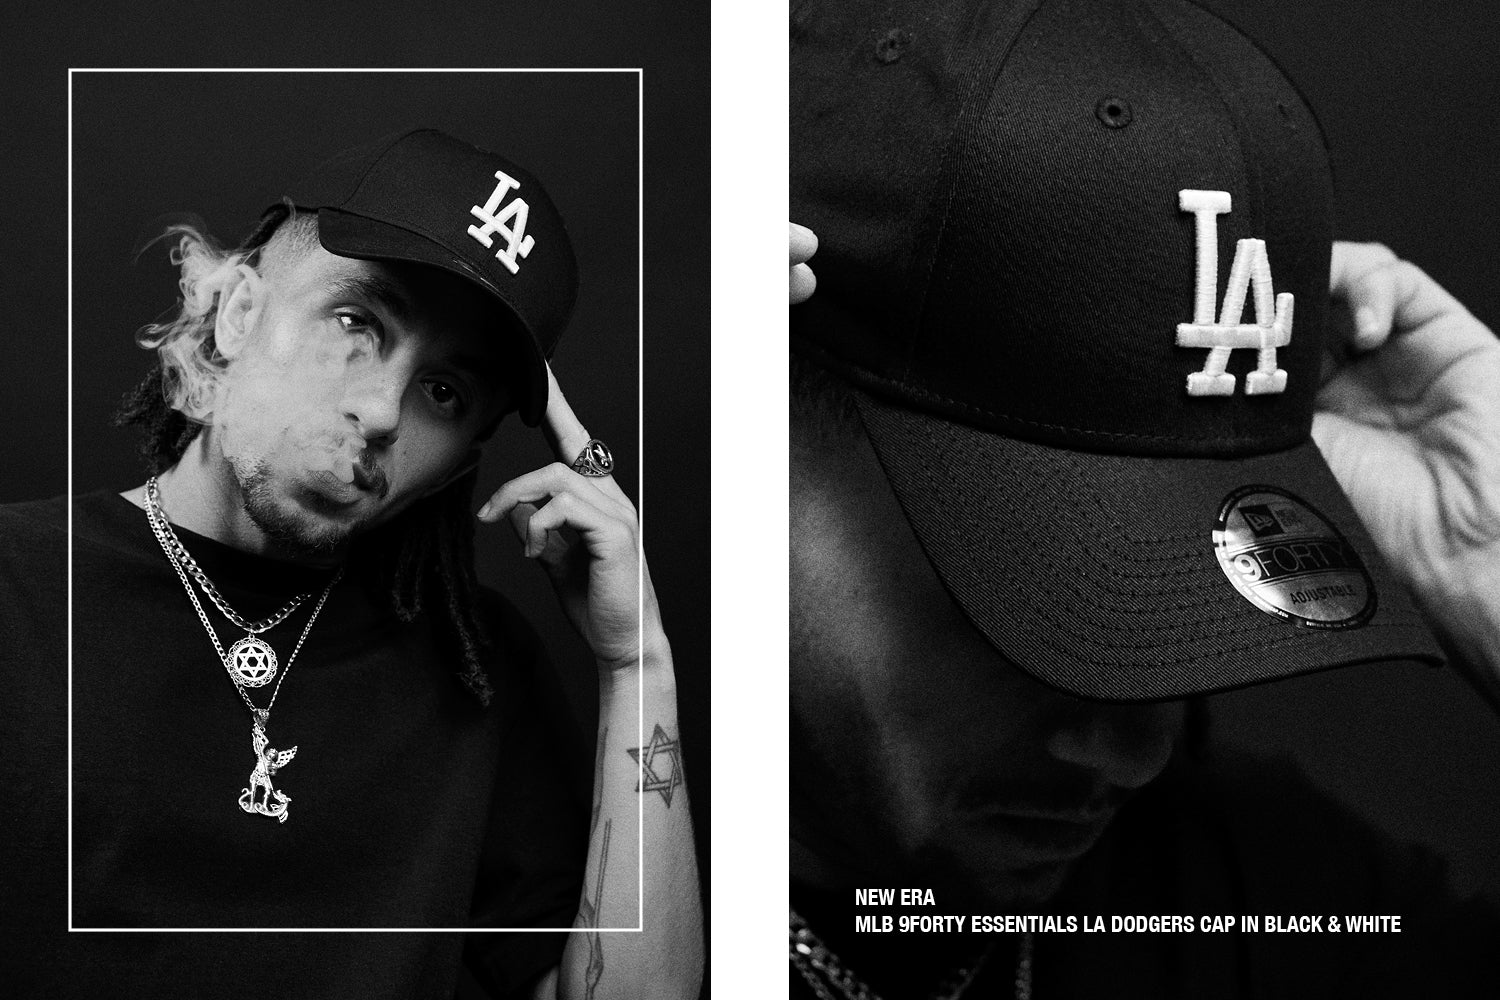 New Era LA Dodgers Cap